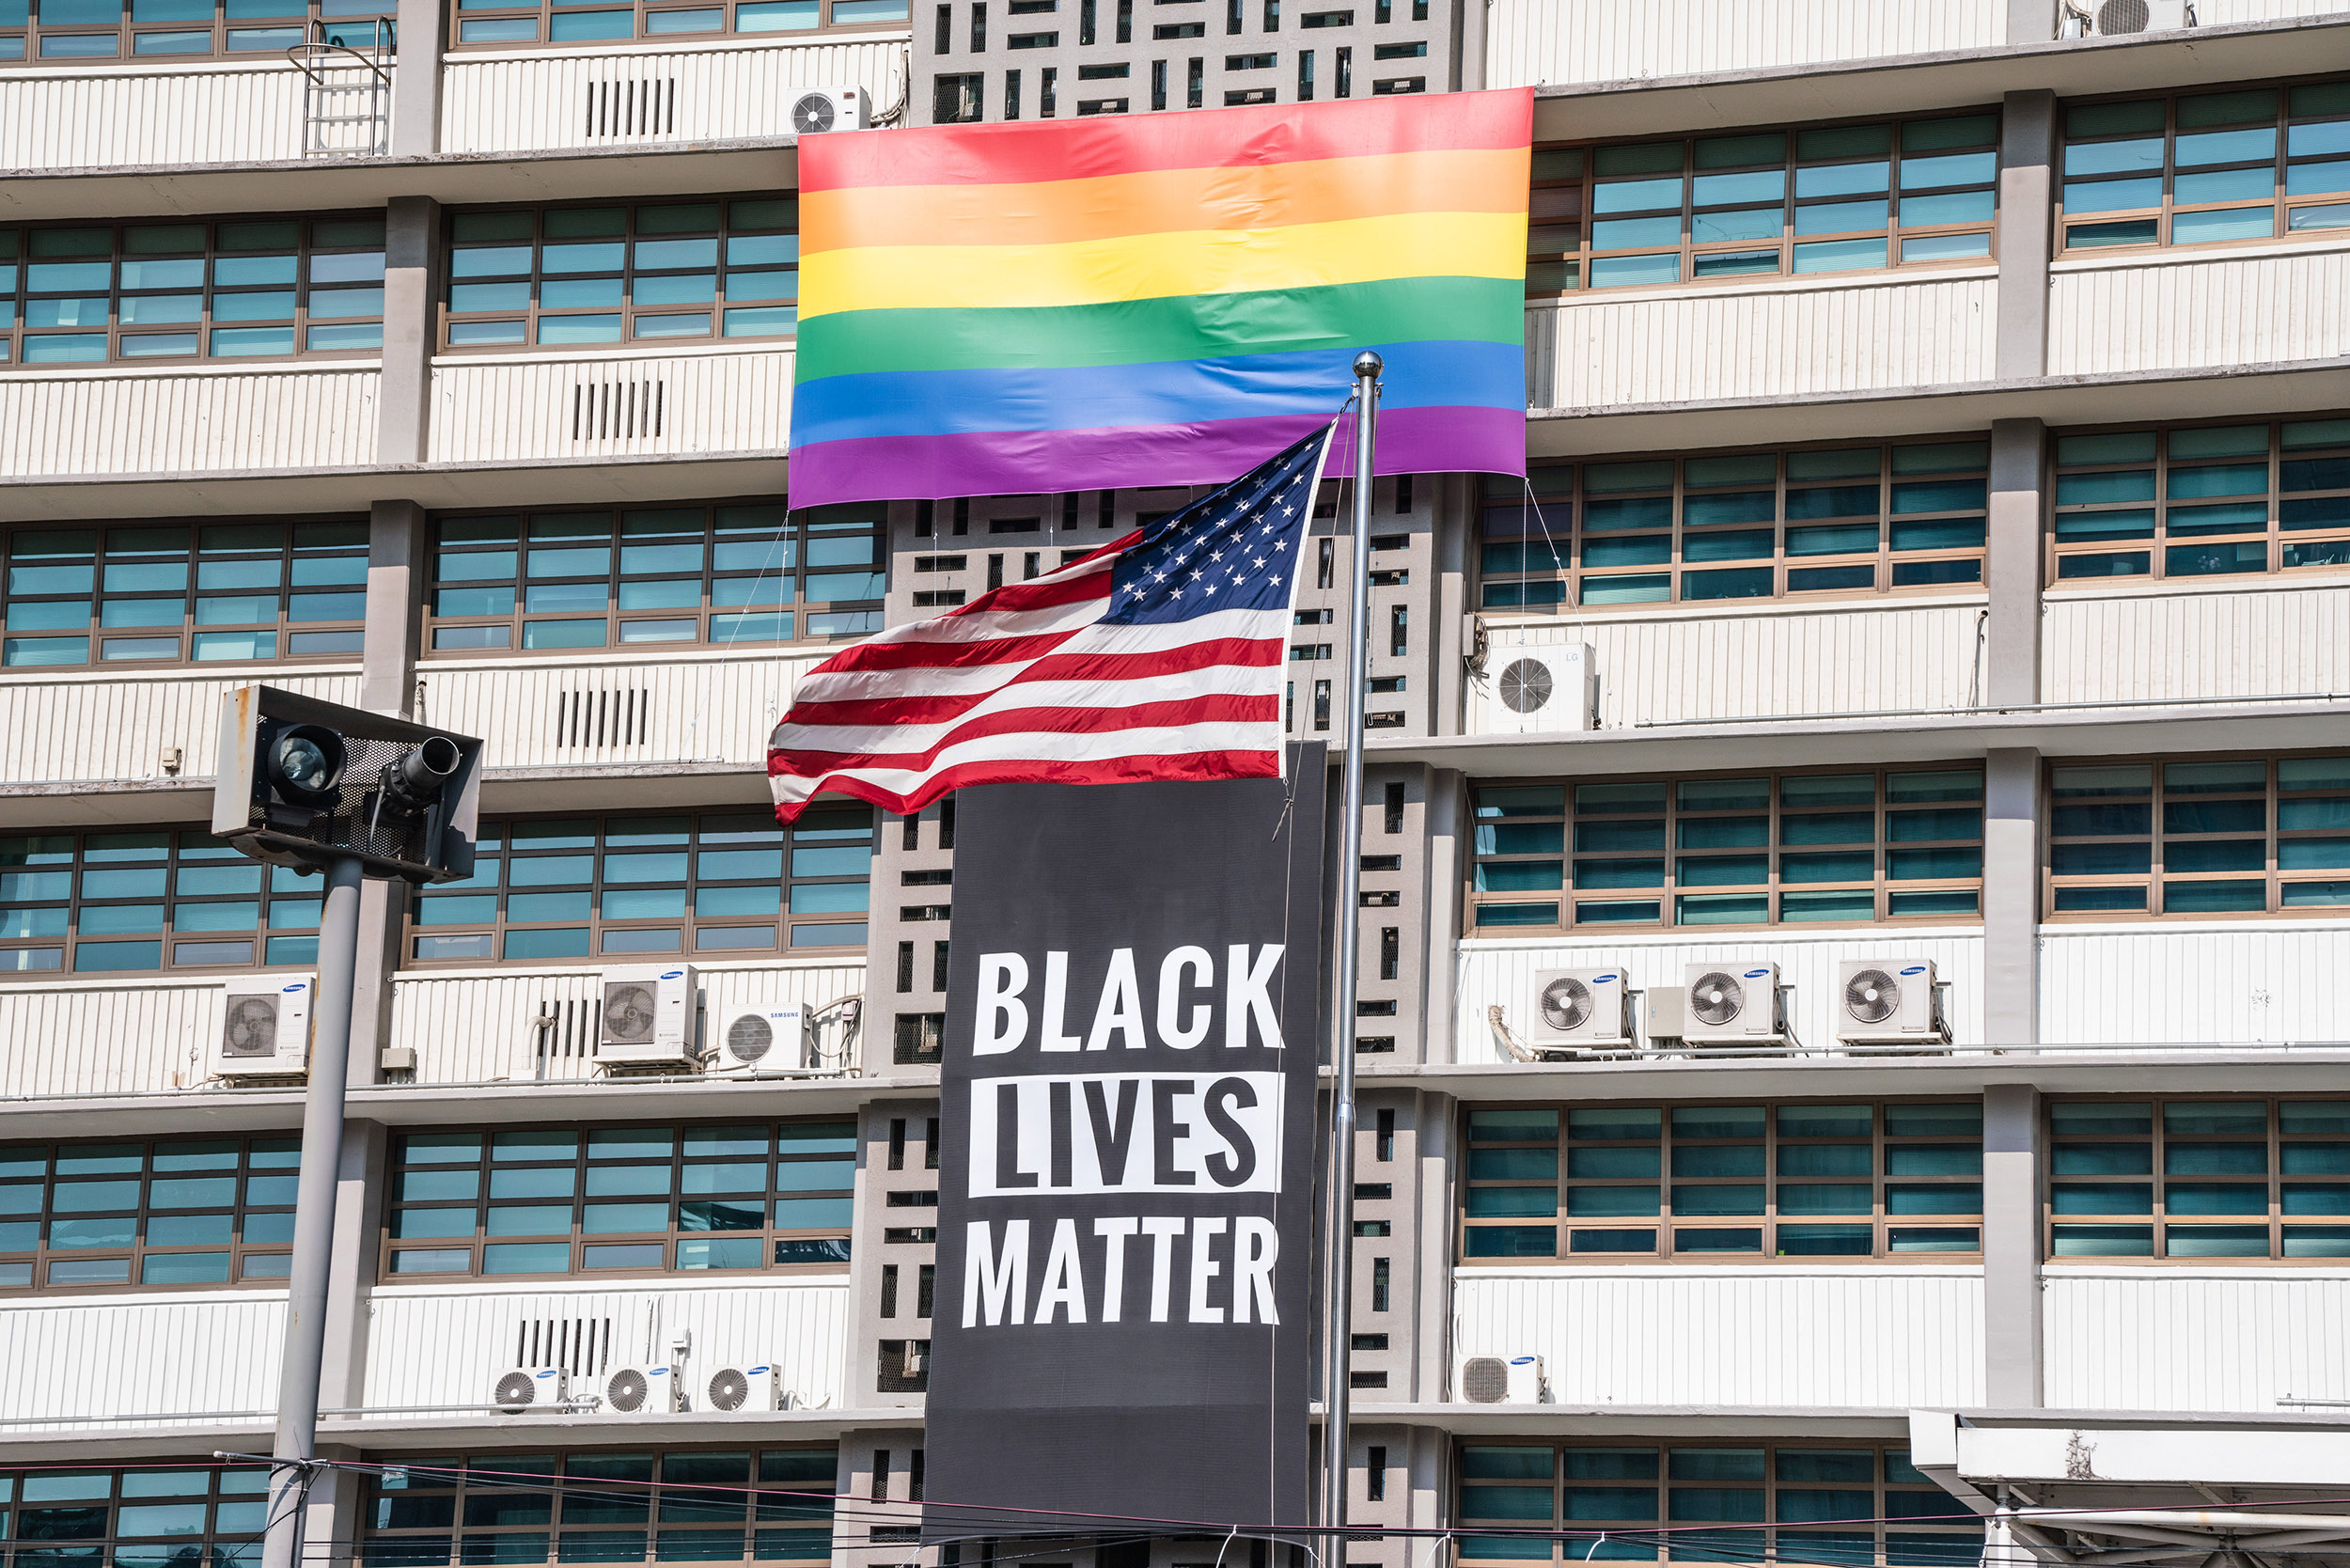 A Black Lives Matter banner, a United States national flag and a rainbow flag are hung on the facade of the US embassy building in Seoul, Korea, on Sunday, June 14.